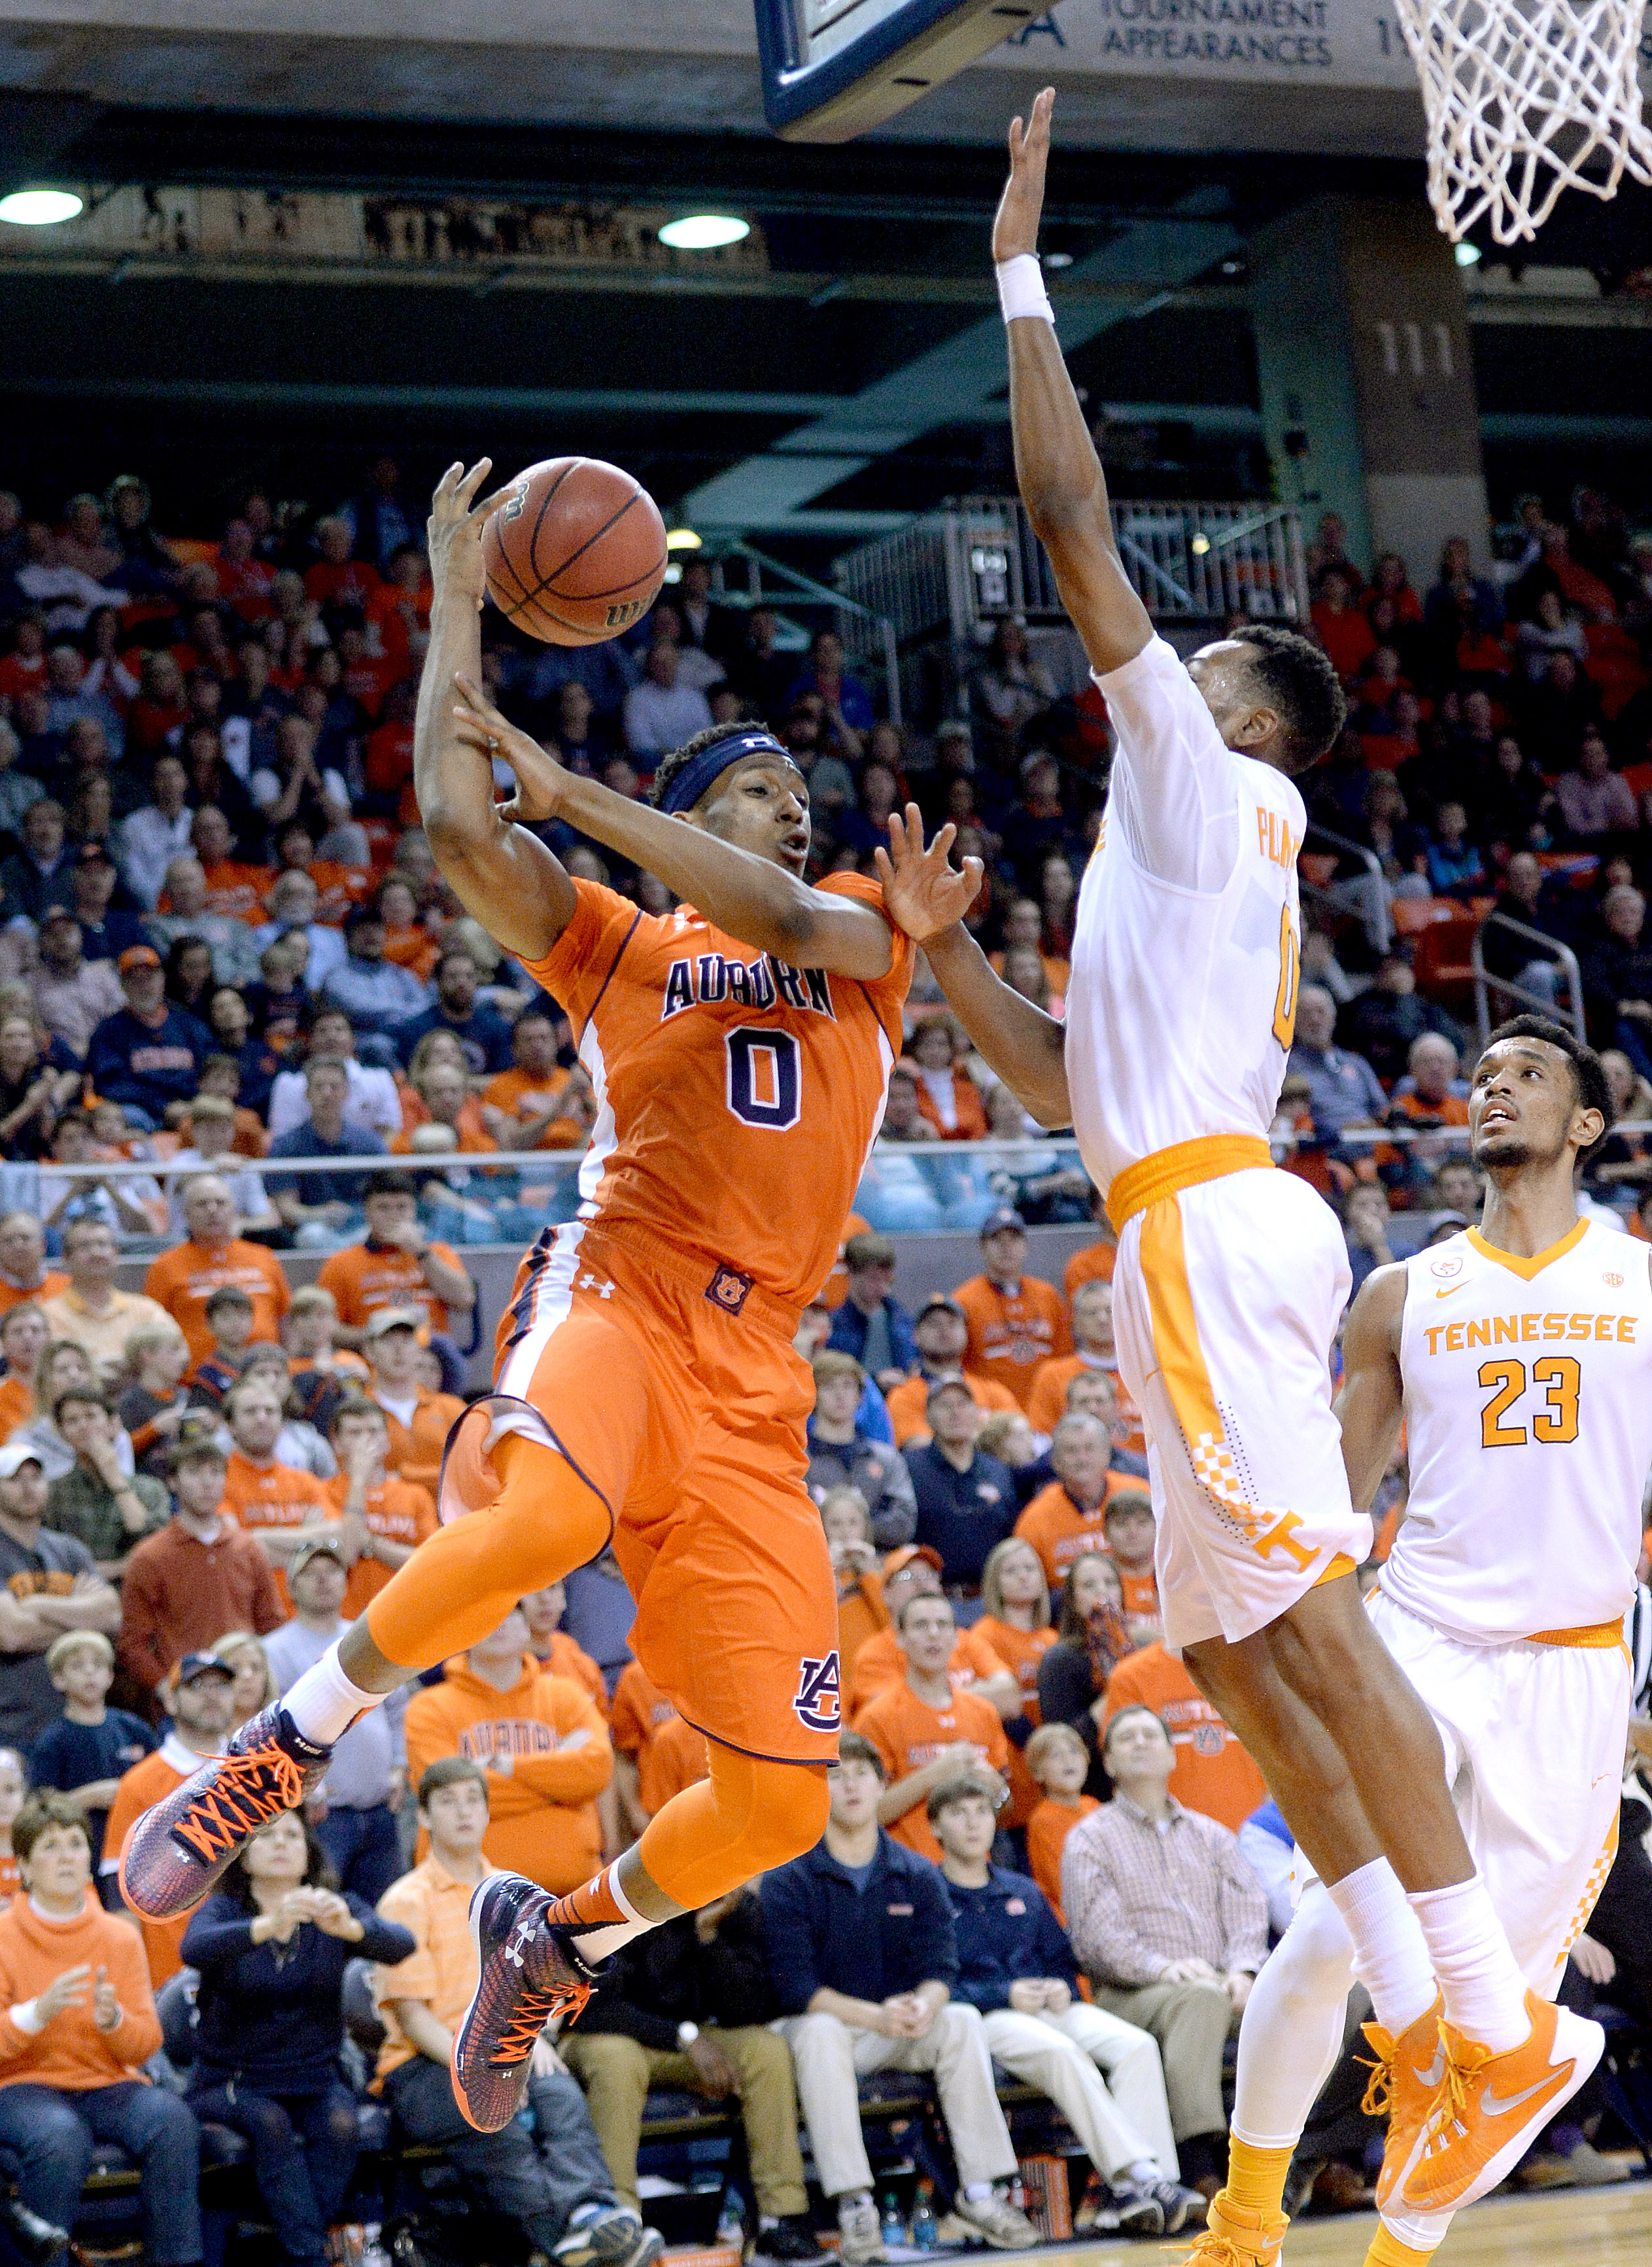 Tennessee guard Kevin Punter (0) fouls Auburn forward Horace Spencer (0) during the second half of an NCAA college basketball game, Saturday, Jan. 2, 2016, in Auburn, Ala. (Julie Bennett /AL.com via AP) MAGS OUT; MANDATORY CREDIT